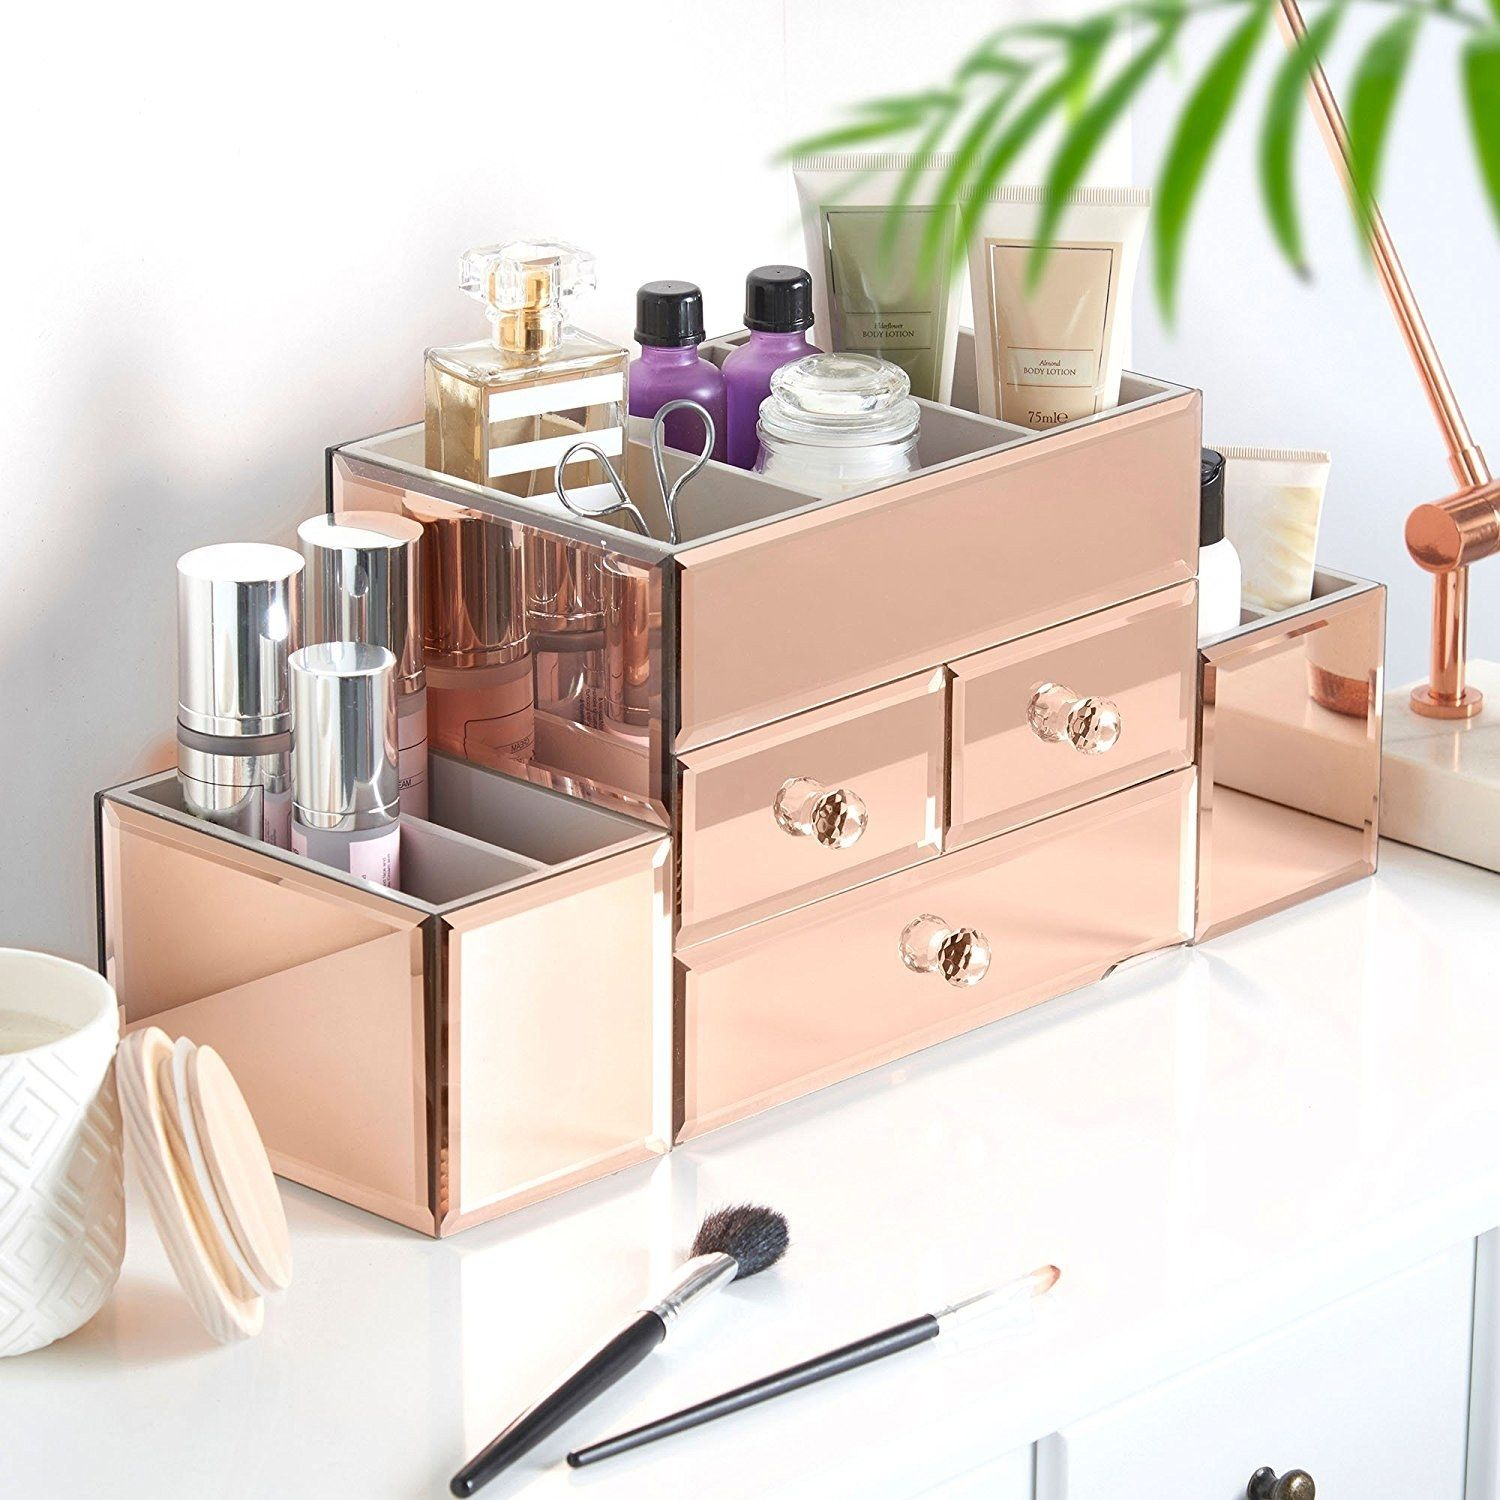 14 Makeup Organizers That Will Totally Transform Your Bathroom Counter